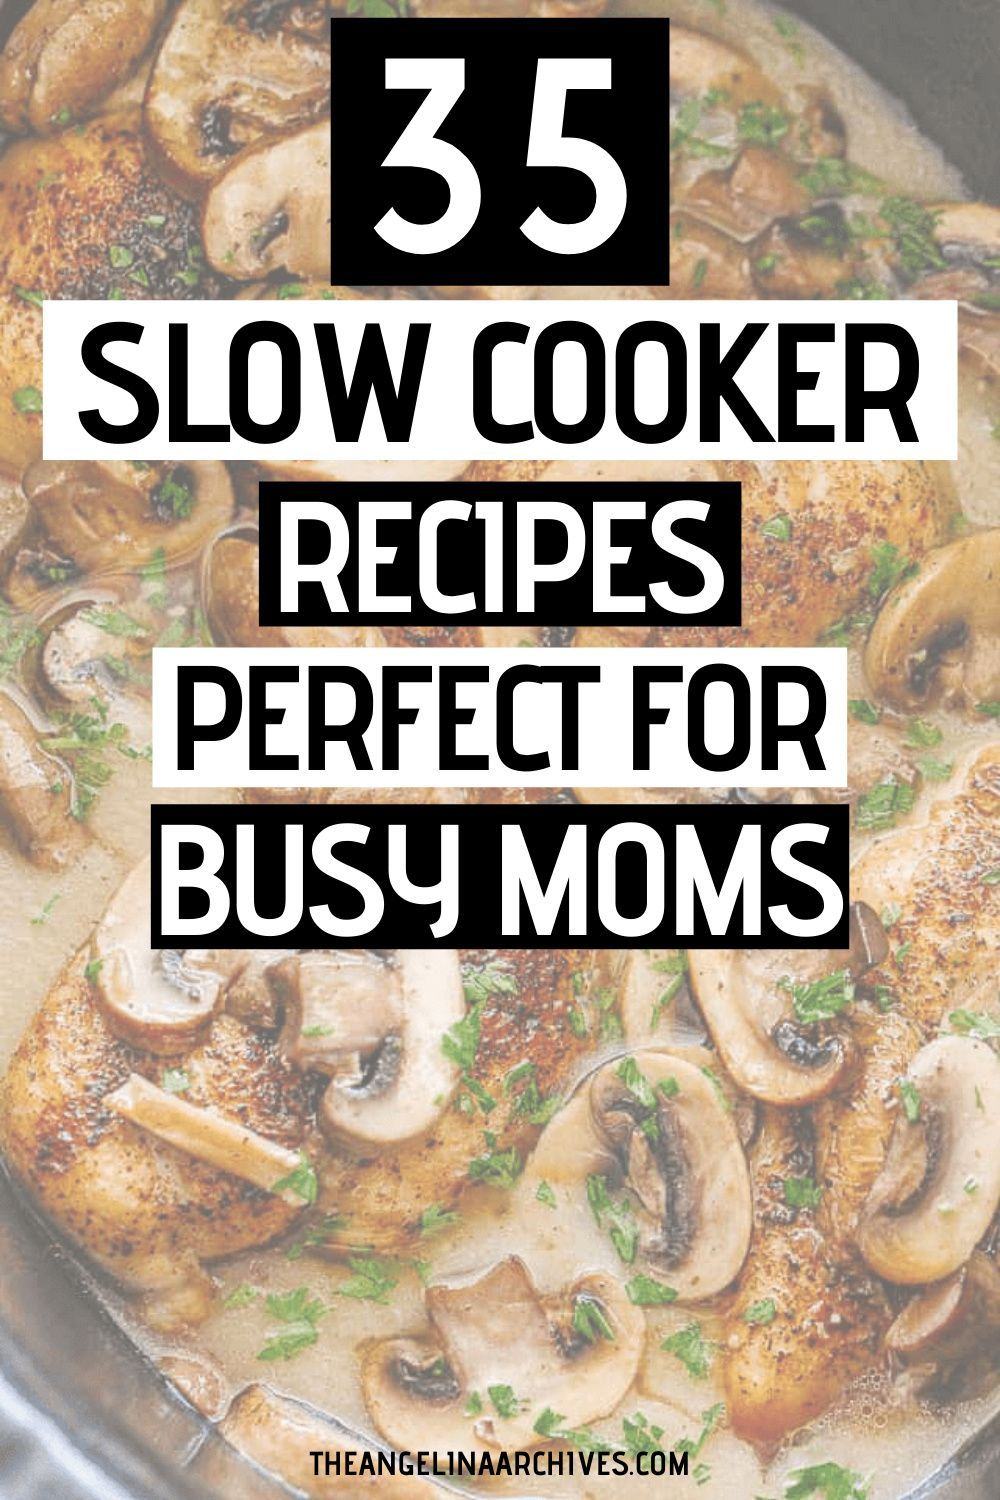 35 Delectable Slow Cooker Recipes You Have To Try In 2020 Slow Cooker Recipes Chicken Slow Cooker Recipes Cooker Recipes